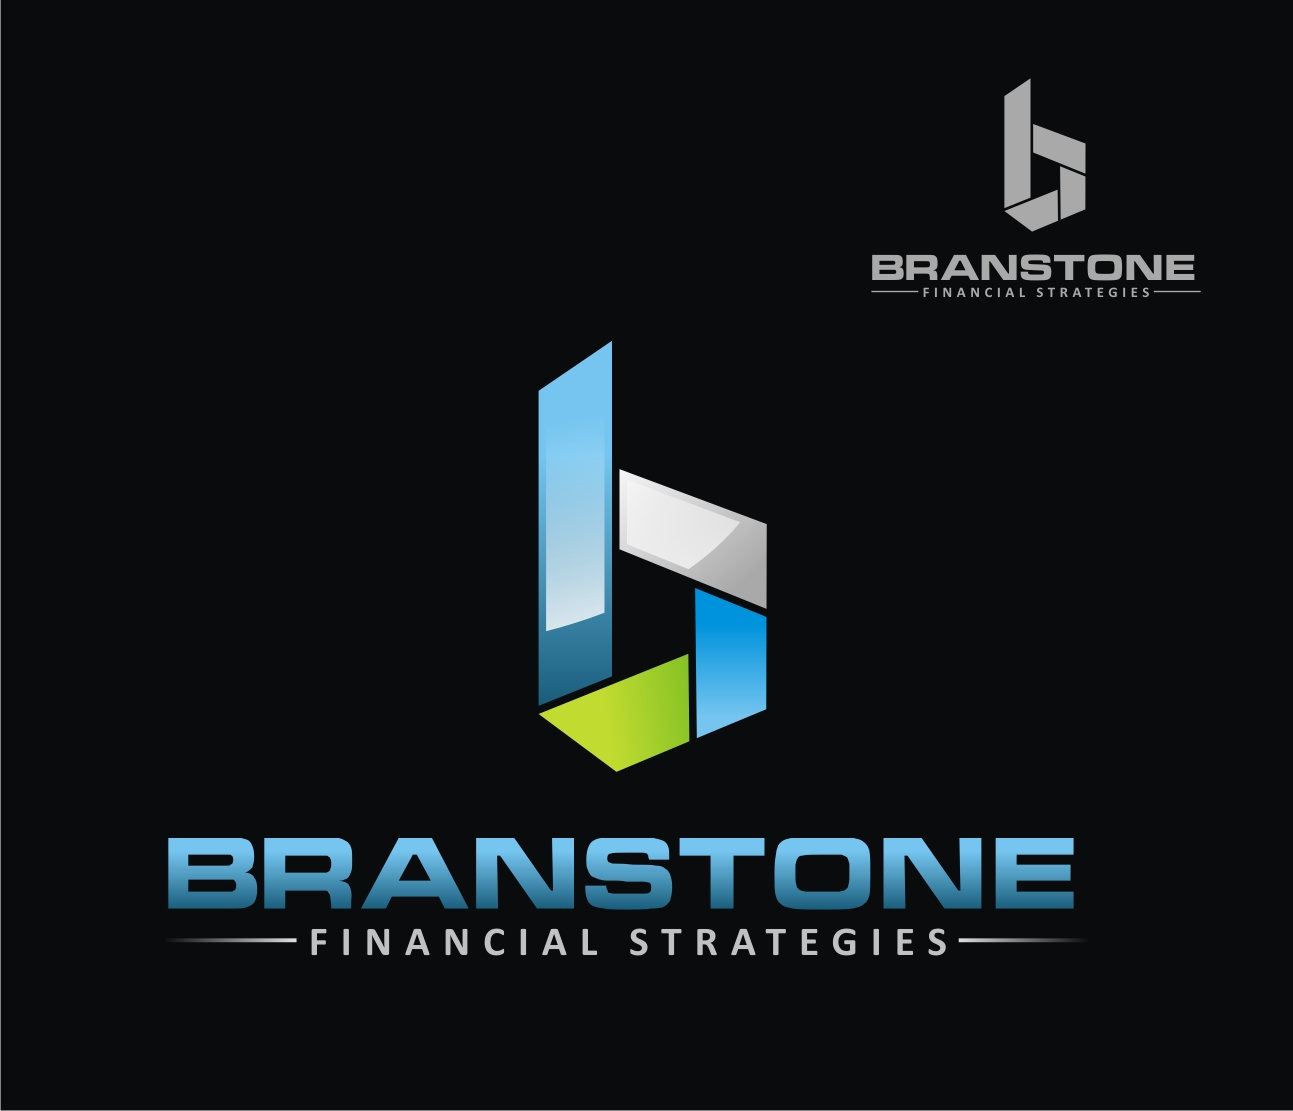 Logo Design by Reivan Ferdinan - Entry No. 299 in the Logo Design Contest Inspiring Logo Design for Branstone Financial Strategies.